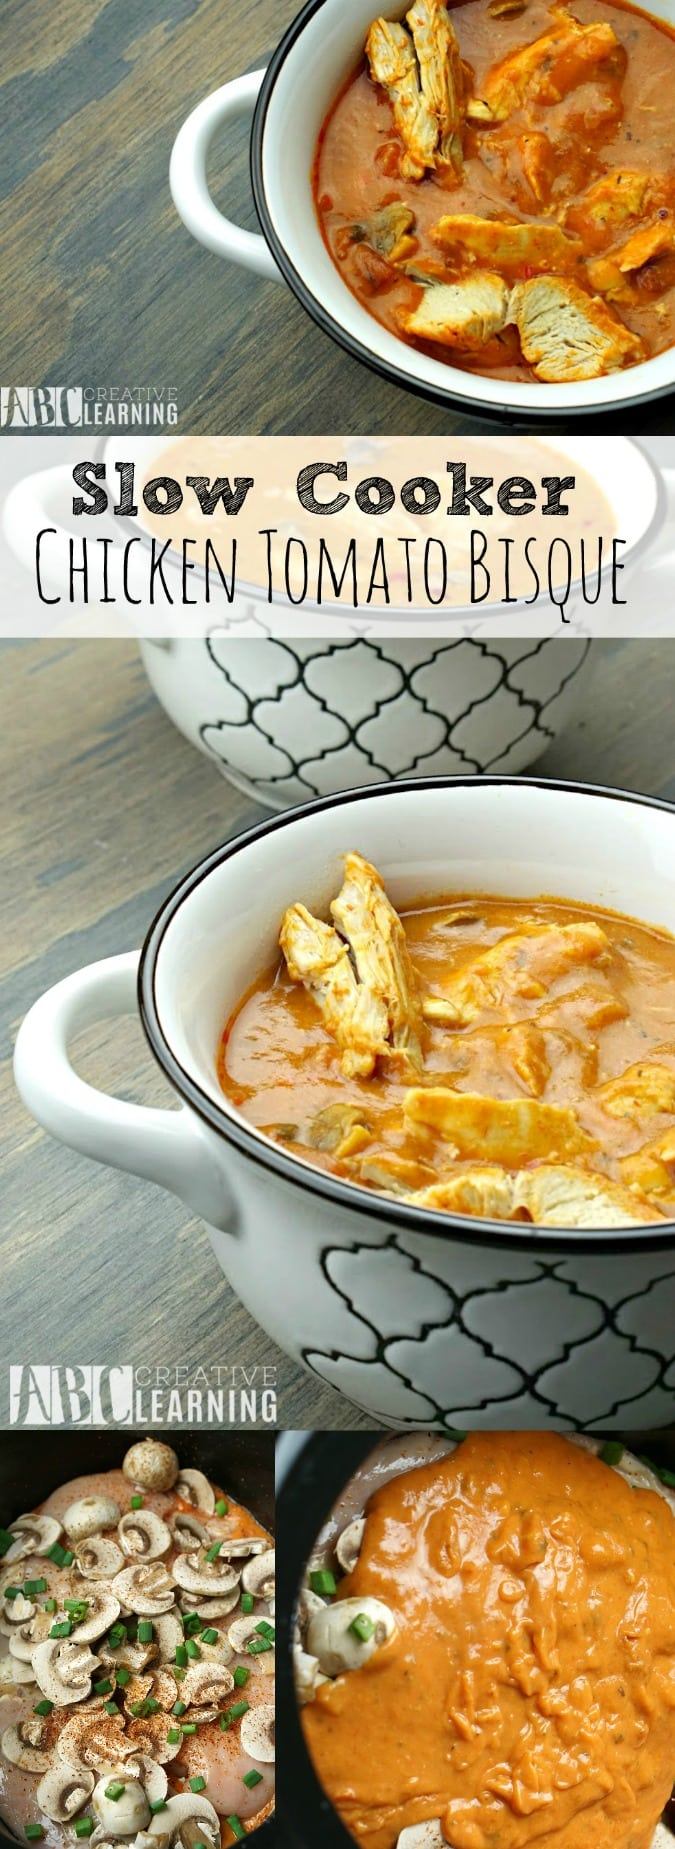 Slow Cooker Chicken Tomato Bisque Soup